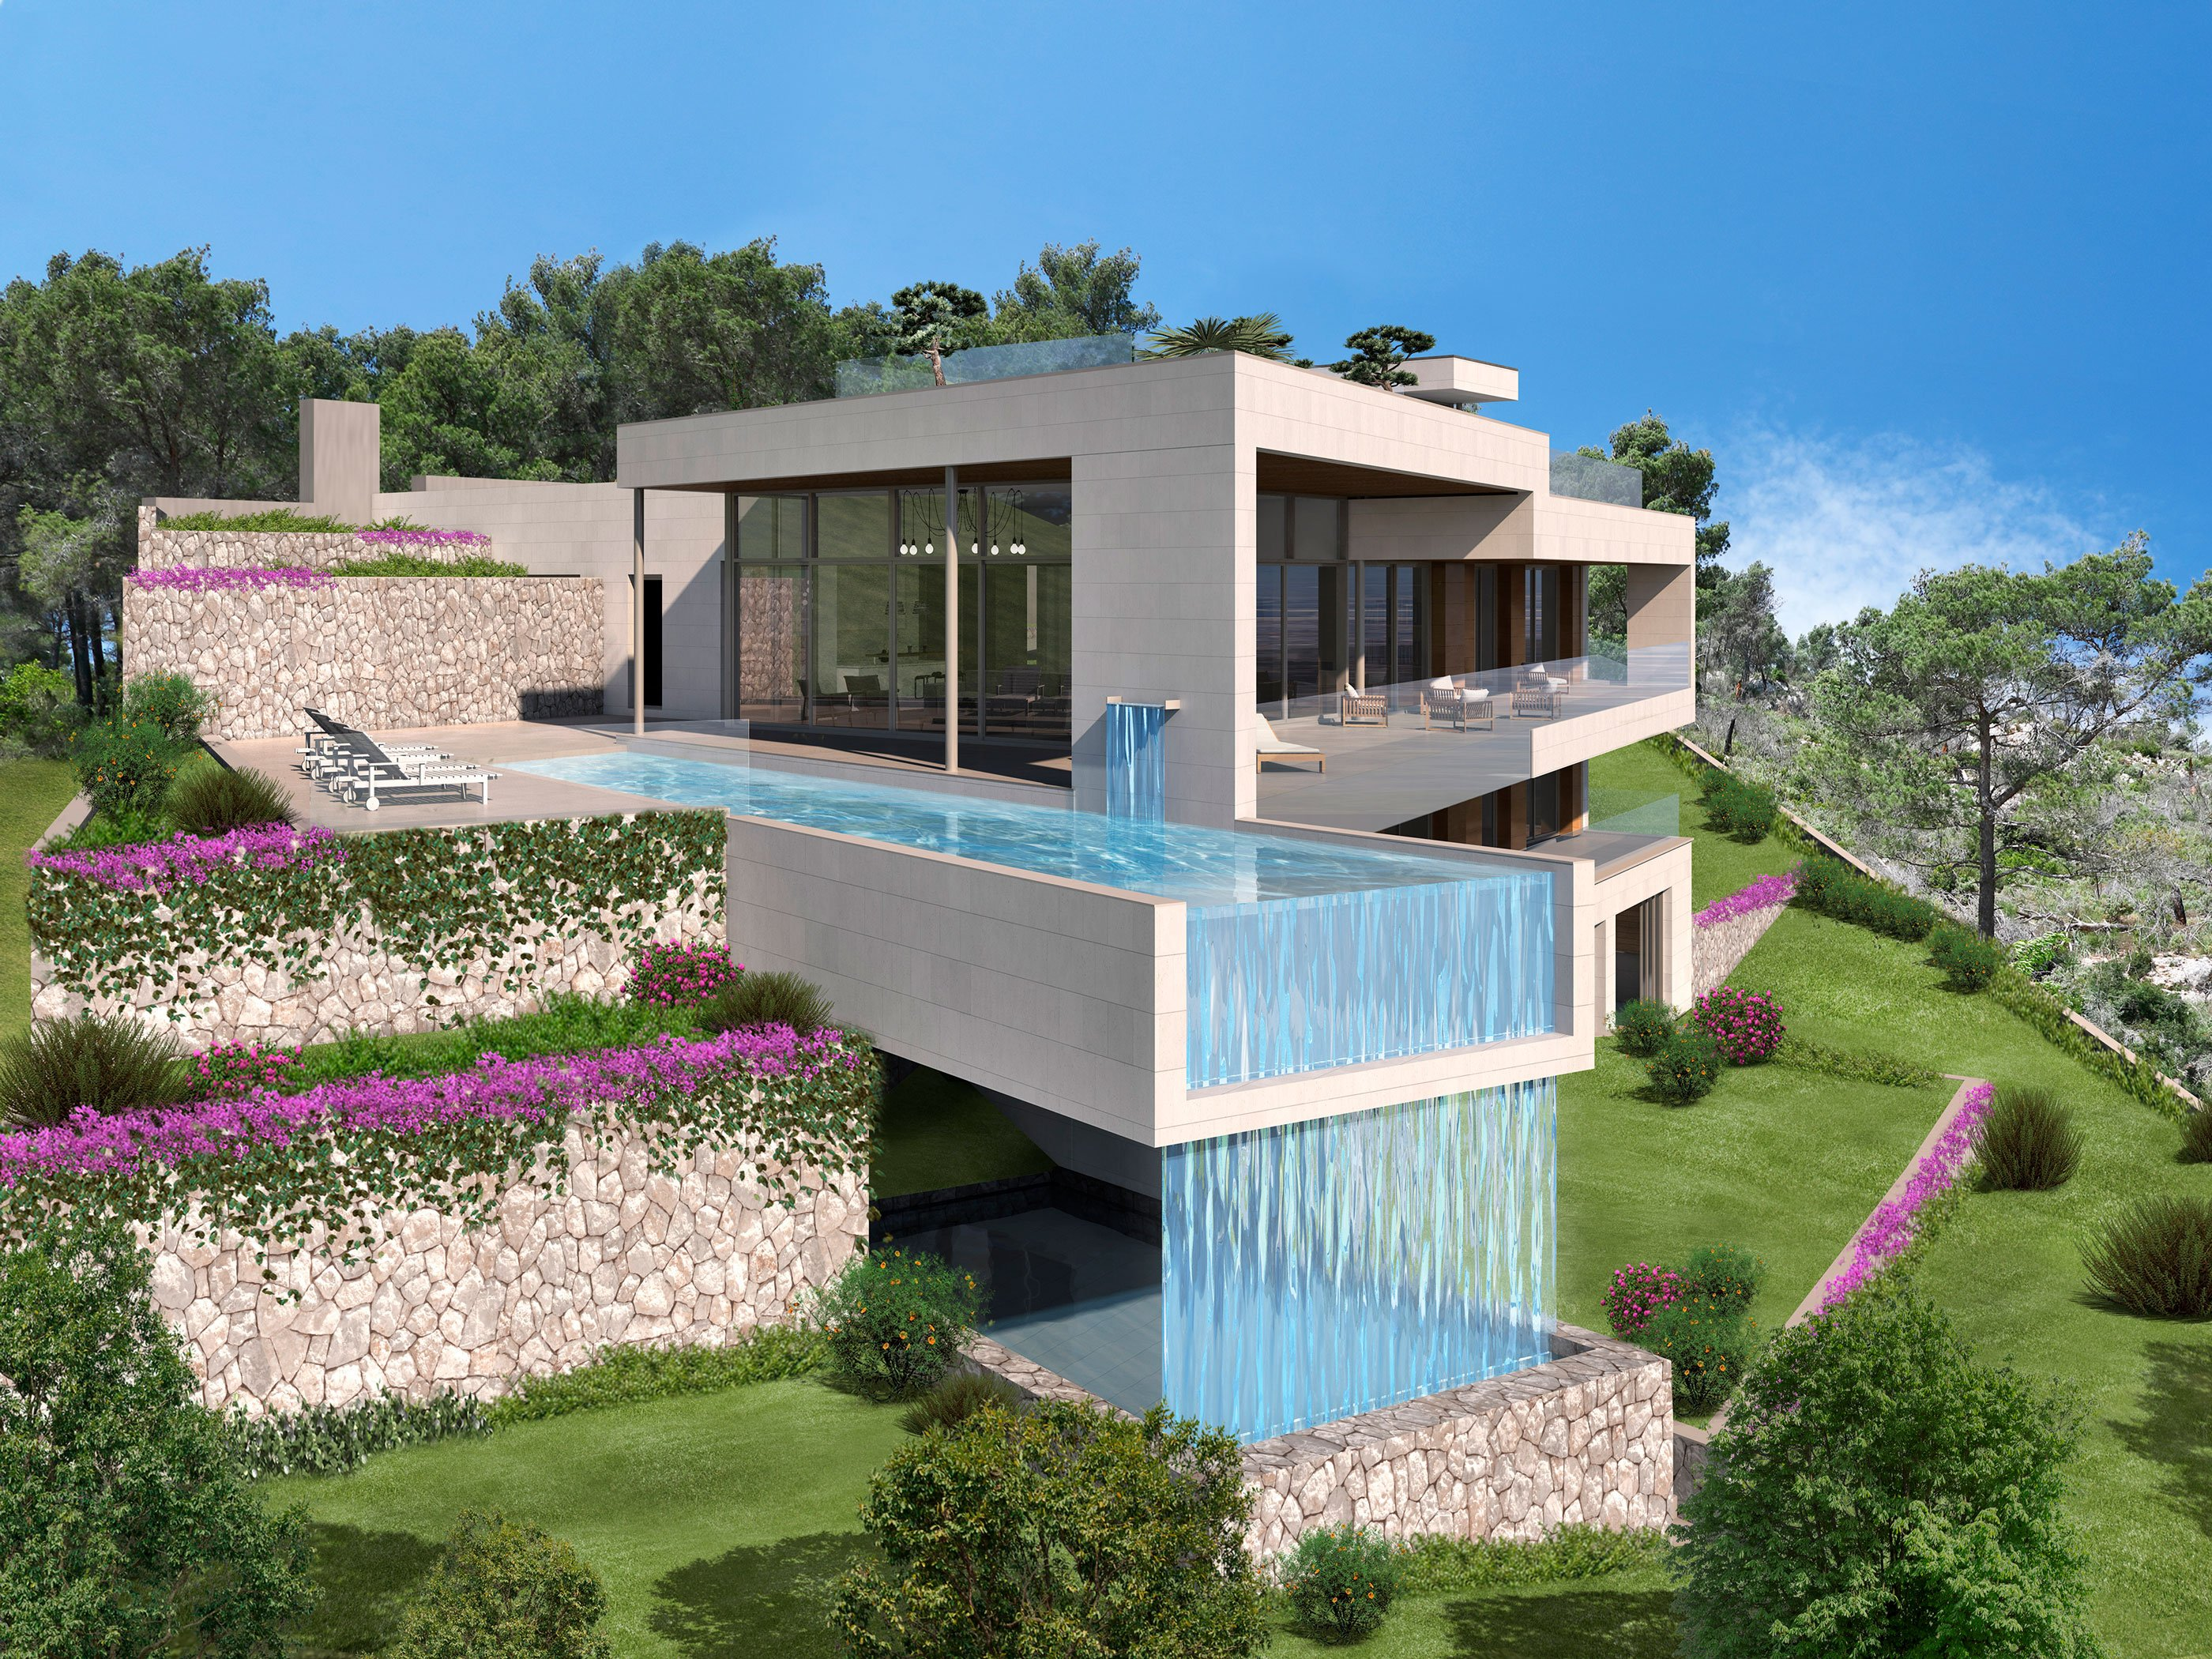 PMA-STUDIO-Son-Vida-3-Architect-Mallorca-House-Project-Management-Architecture-04